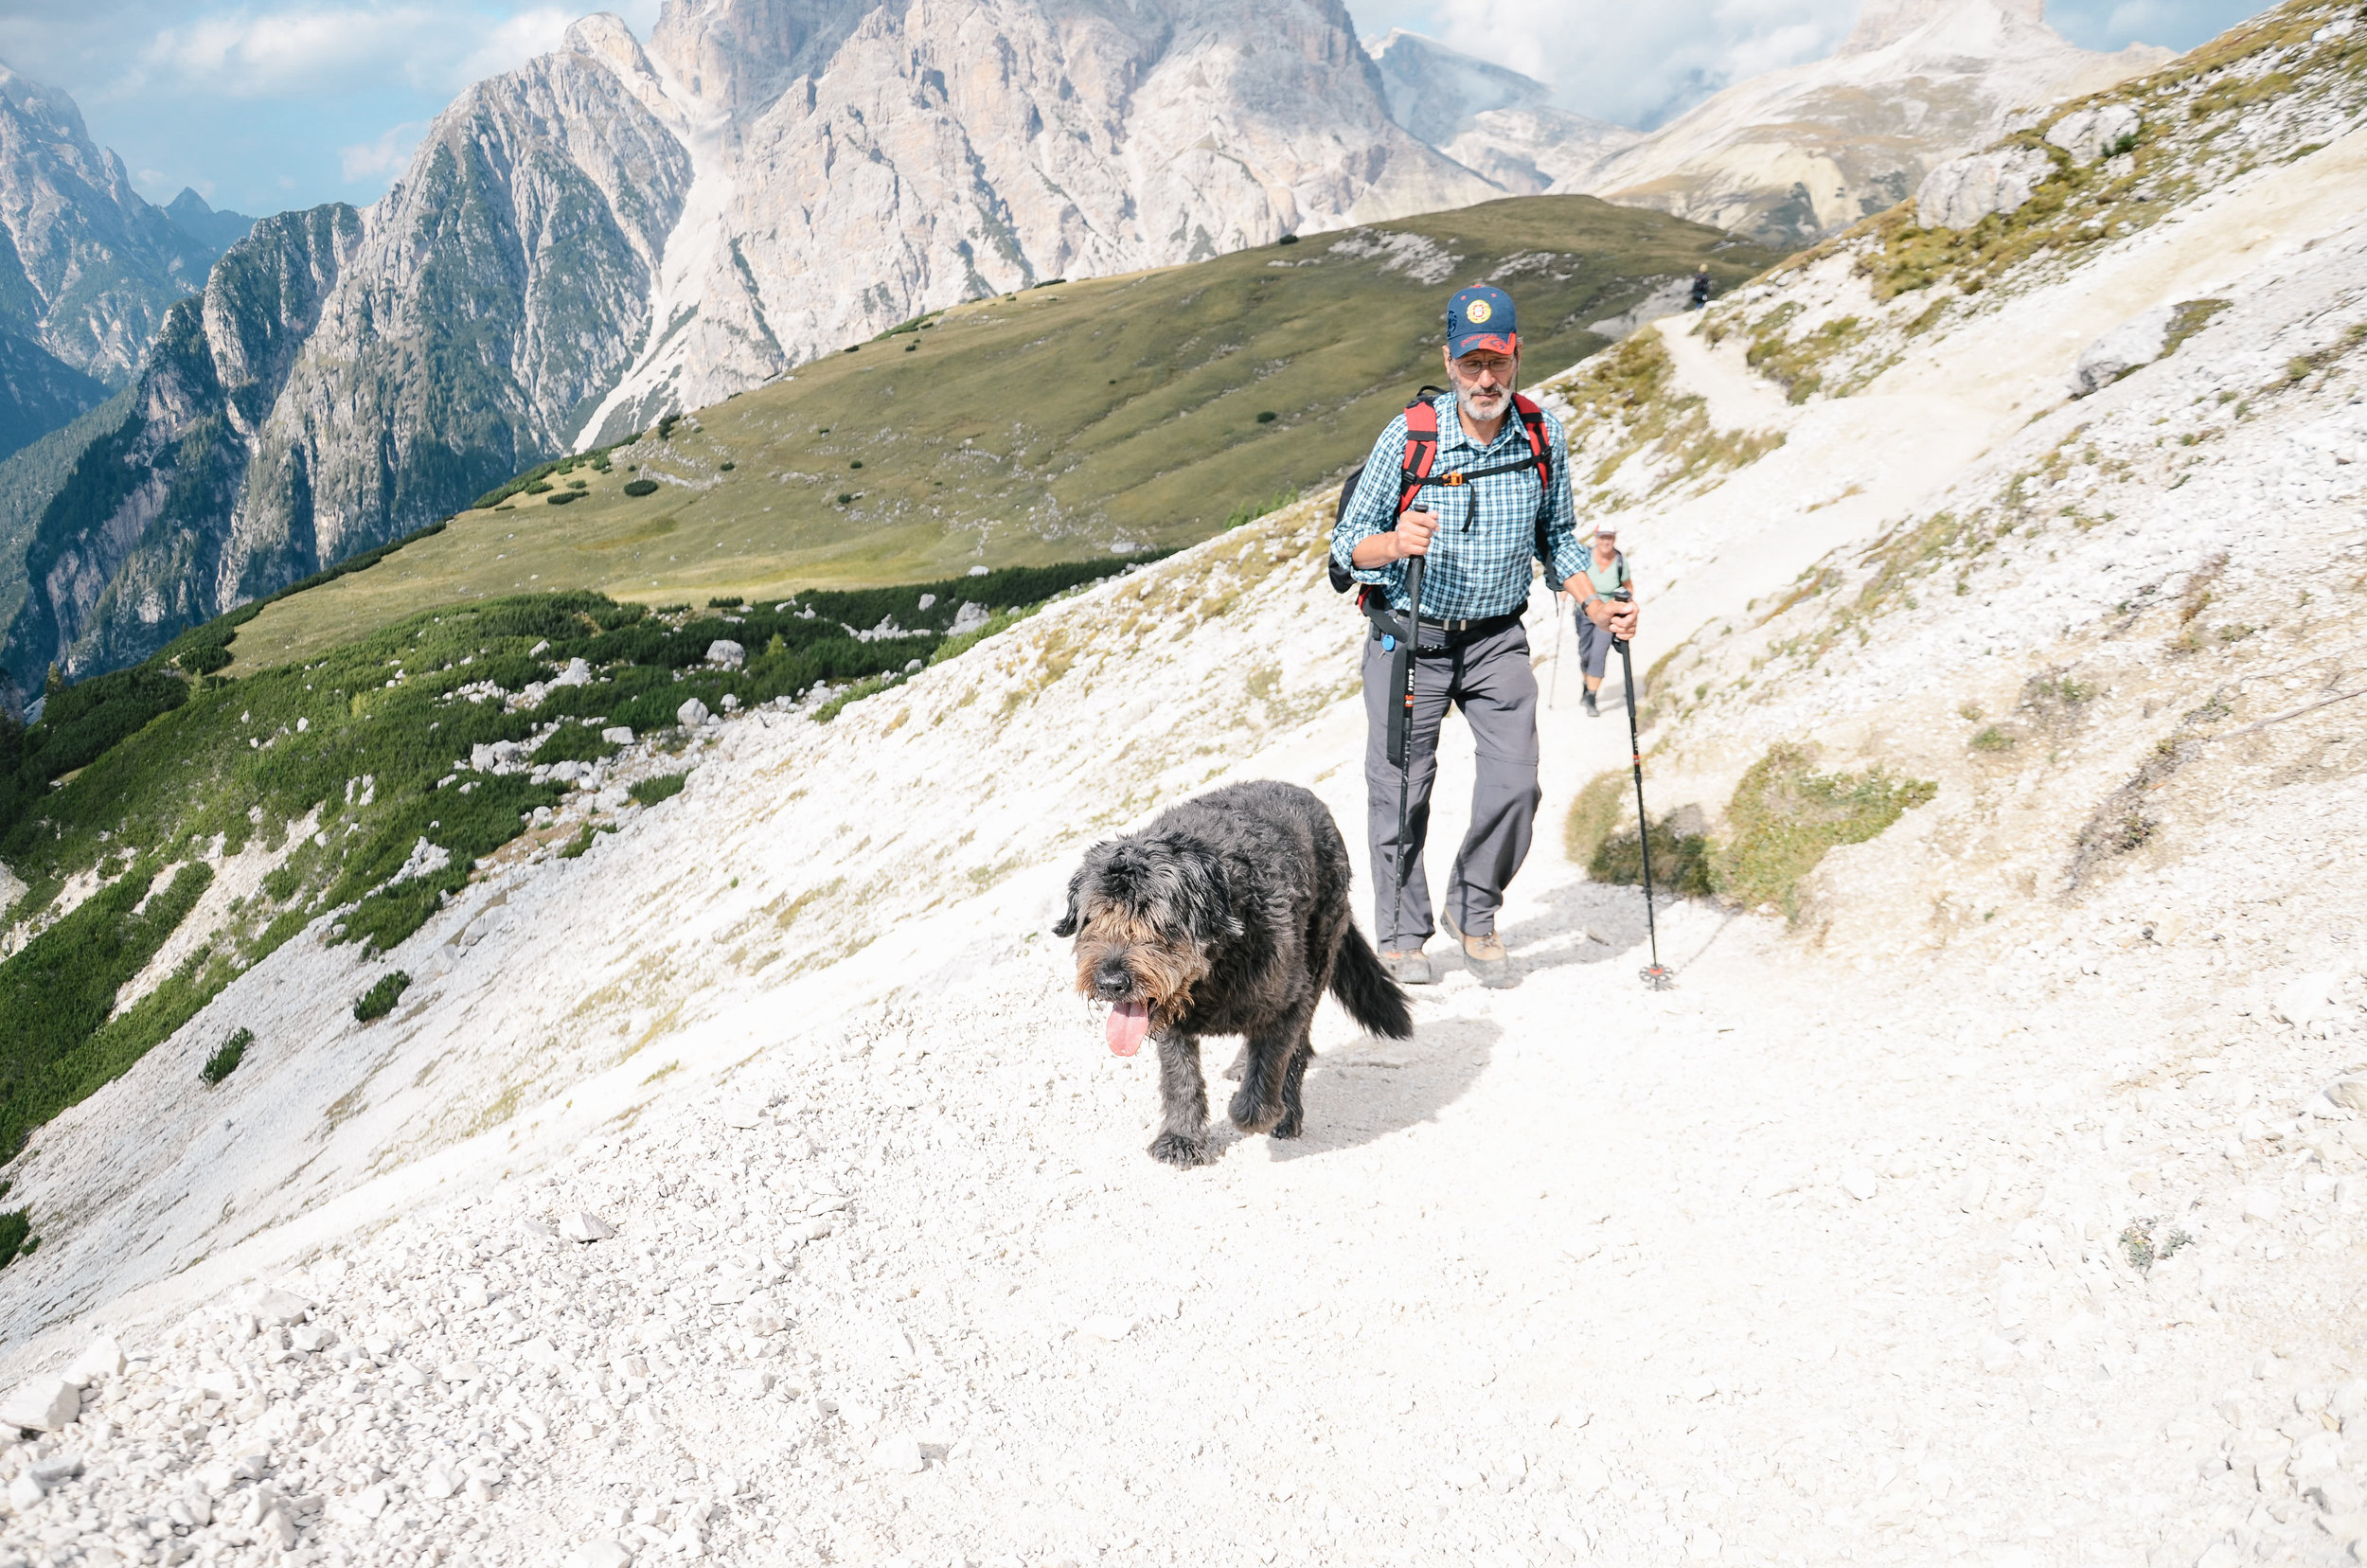 dolomites-why-the-italian-alps-should-be-your-next-mountain-adventure- travel-blog-13.jpg